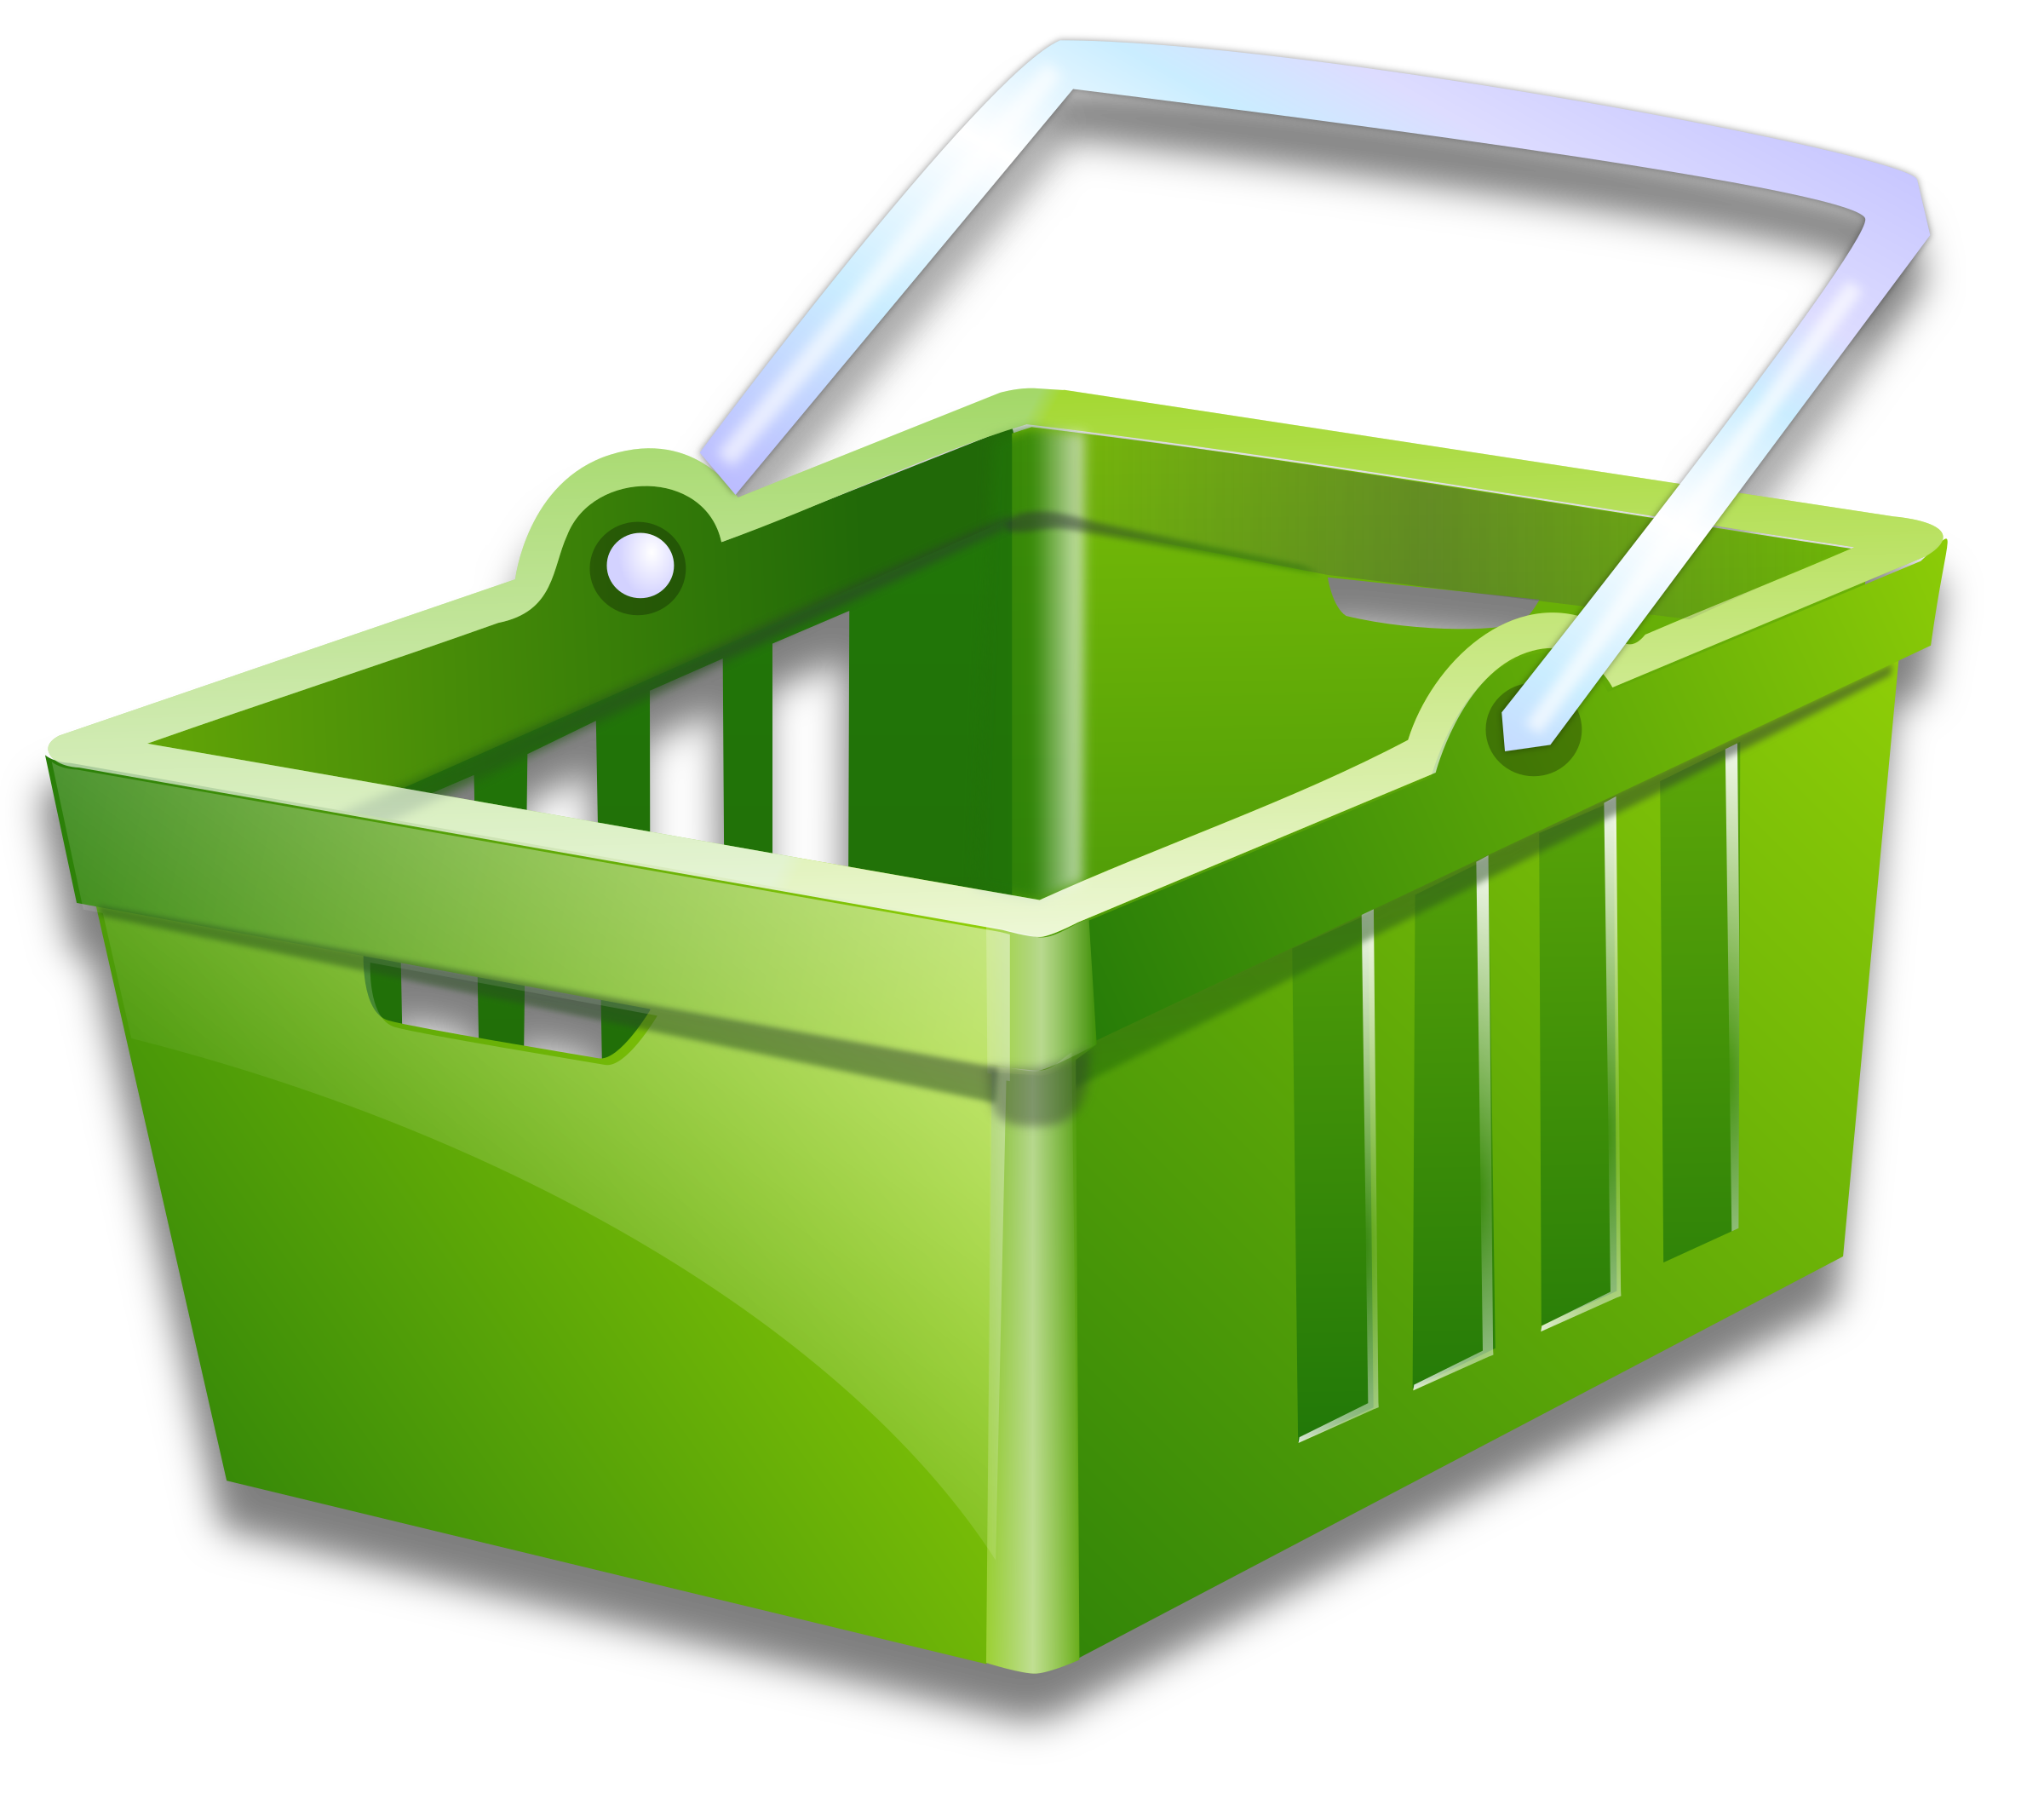 png royalty free library Supermarket clipart shoping. Basket grocery